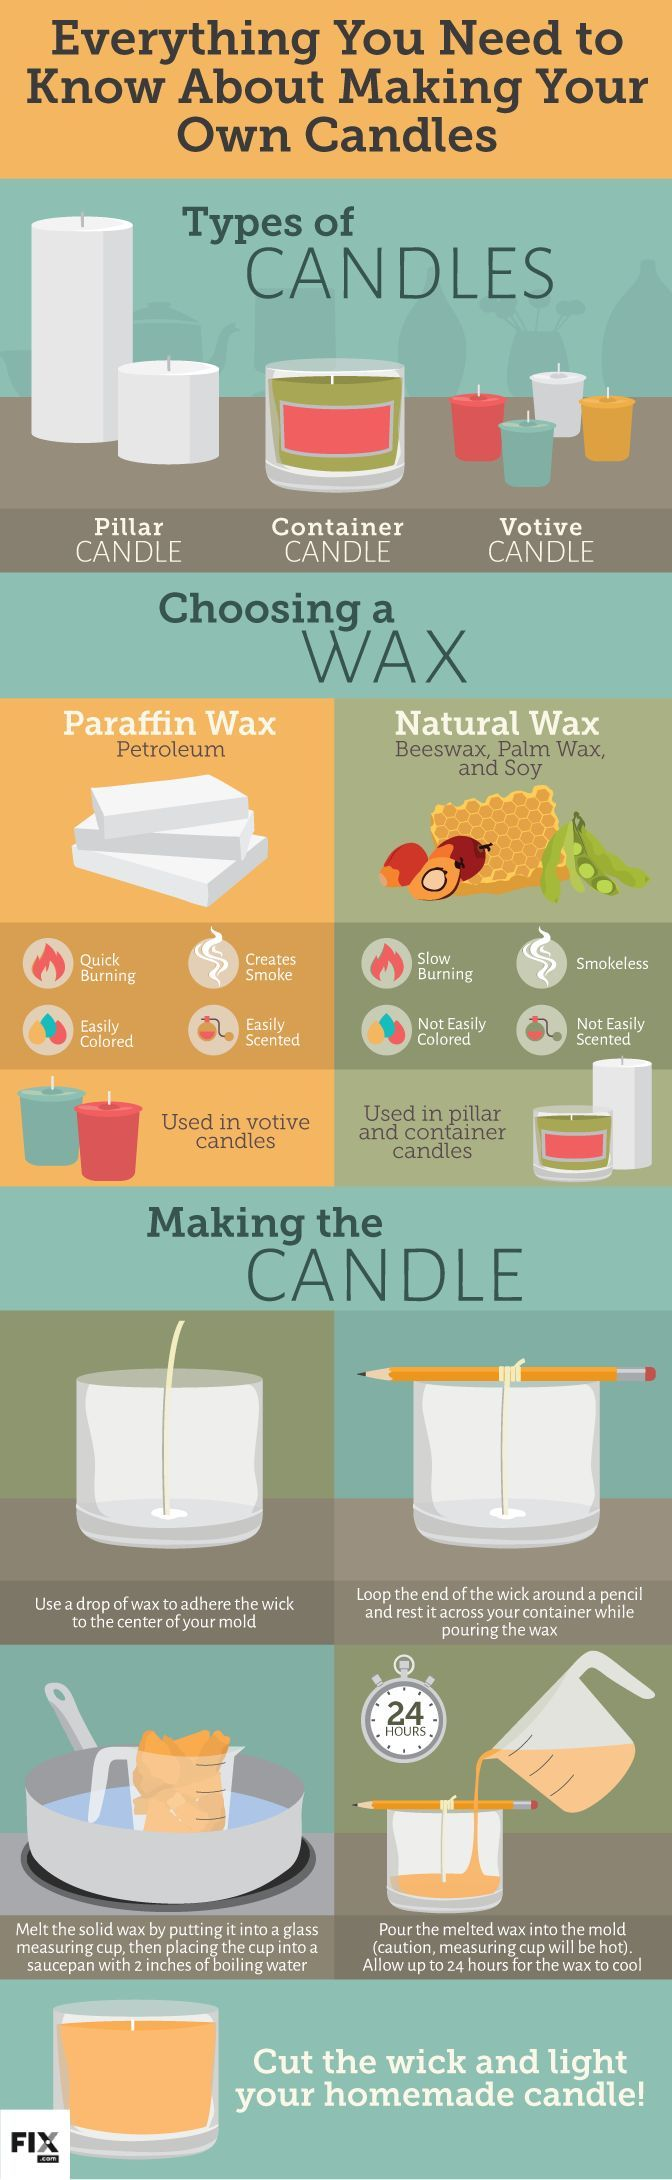 How to Make a Homemade Candles [Infographic] |  Create your Own Relaxing Aromas wi